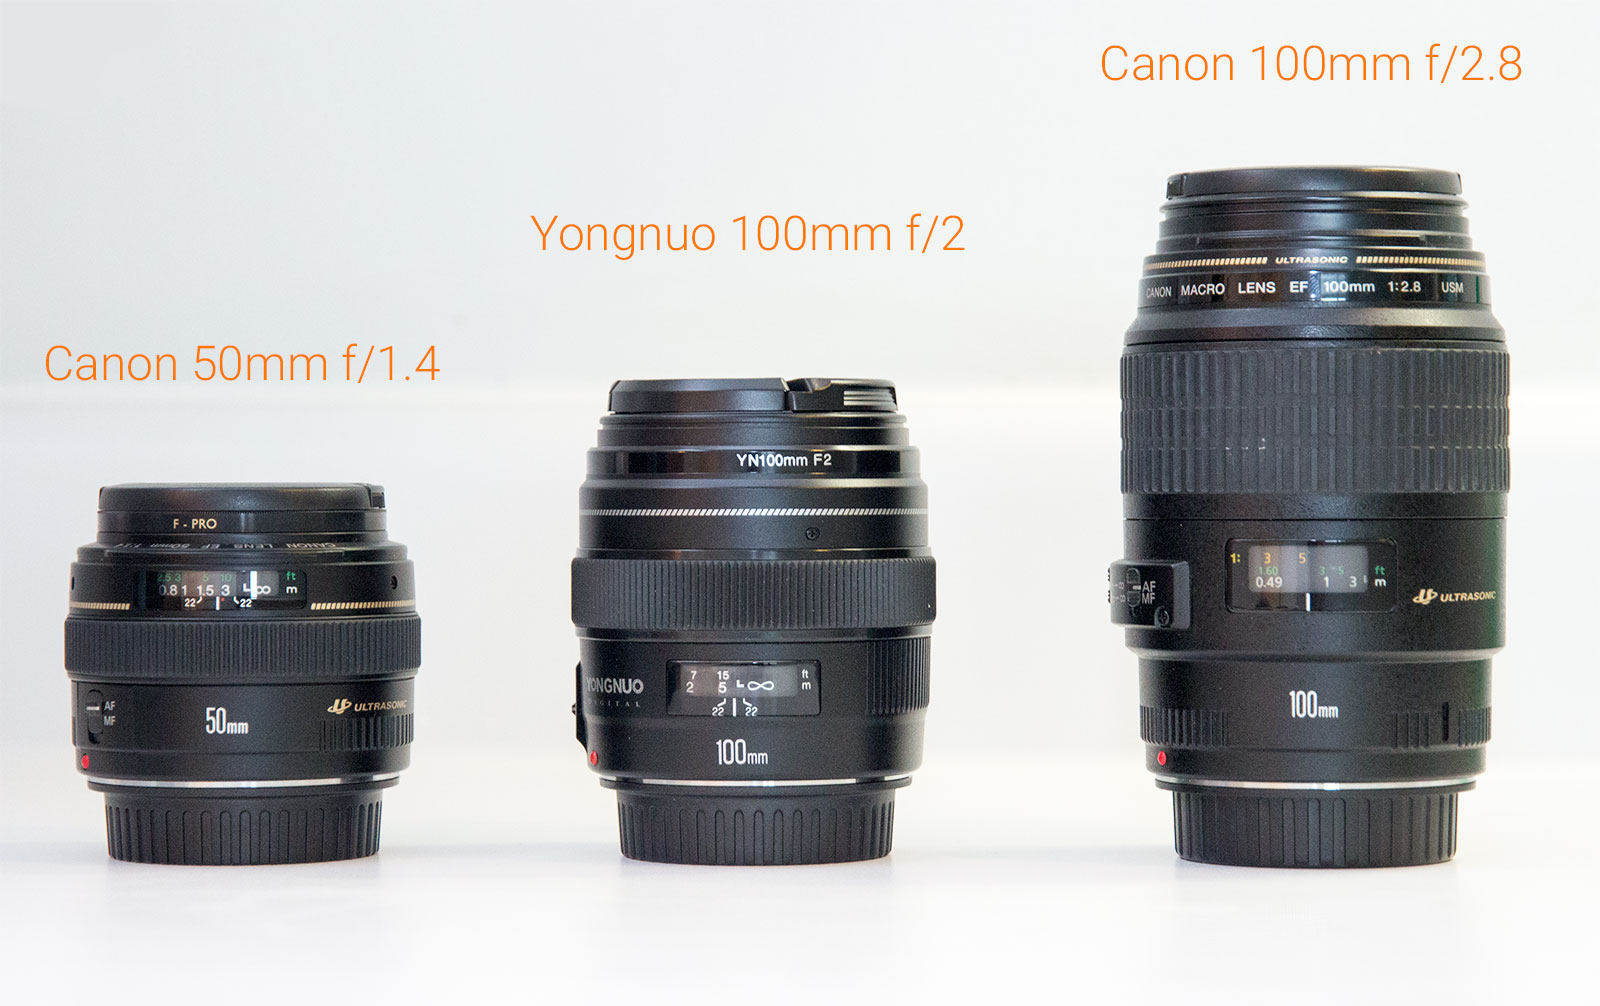 YN100mm f/2 Canon - Comparison